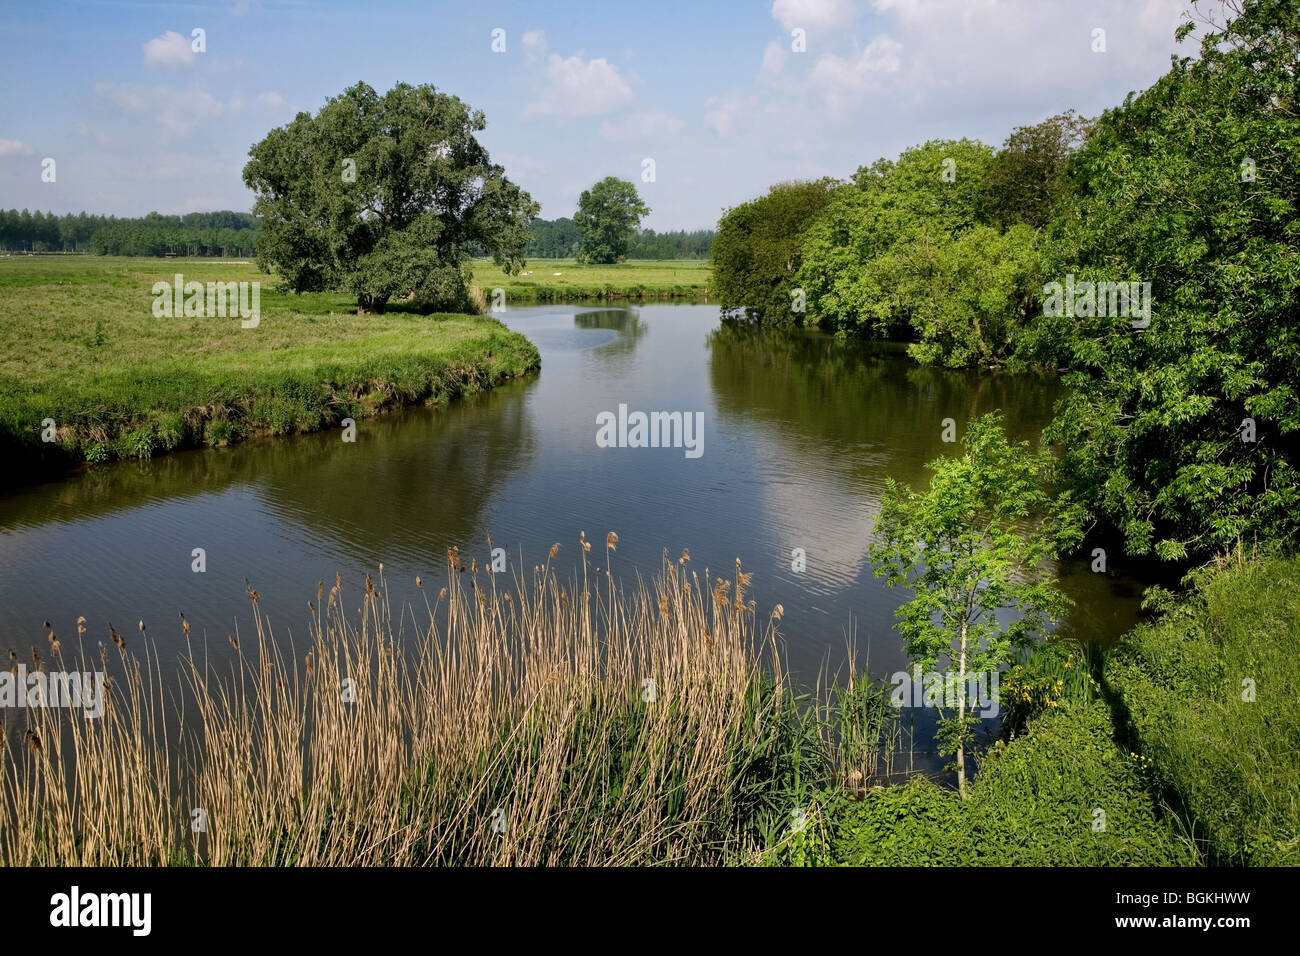 Meadows and the river Lys at Sint-Martens-Latem, Belgium Stock Photo